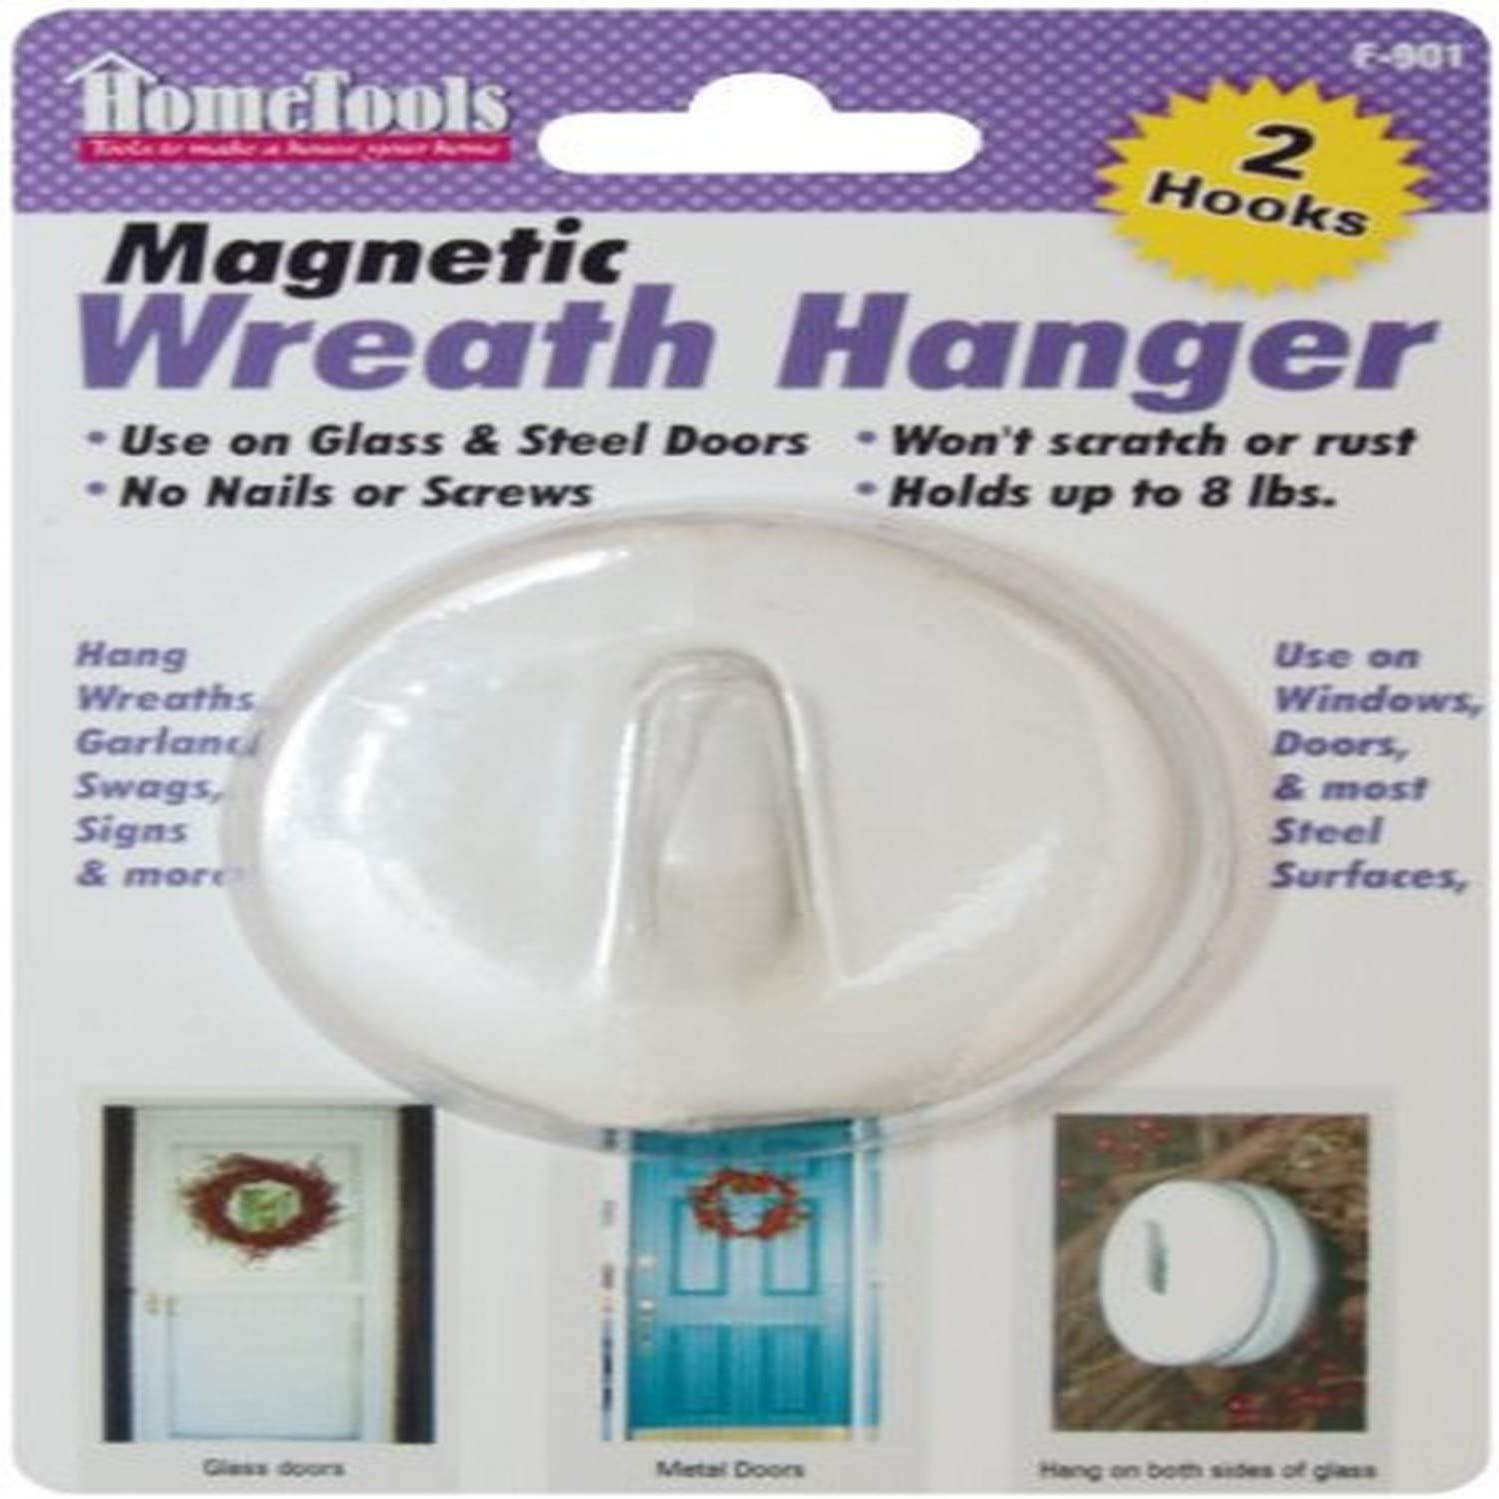 F-901 Magnetic Wreath Hanger Max 68% OFF - 2-1 2